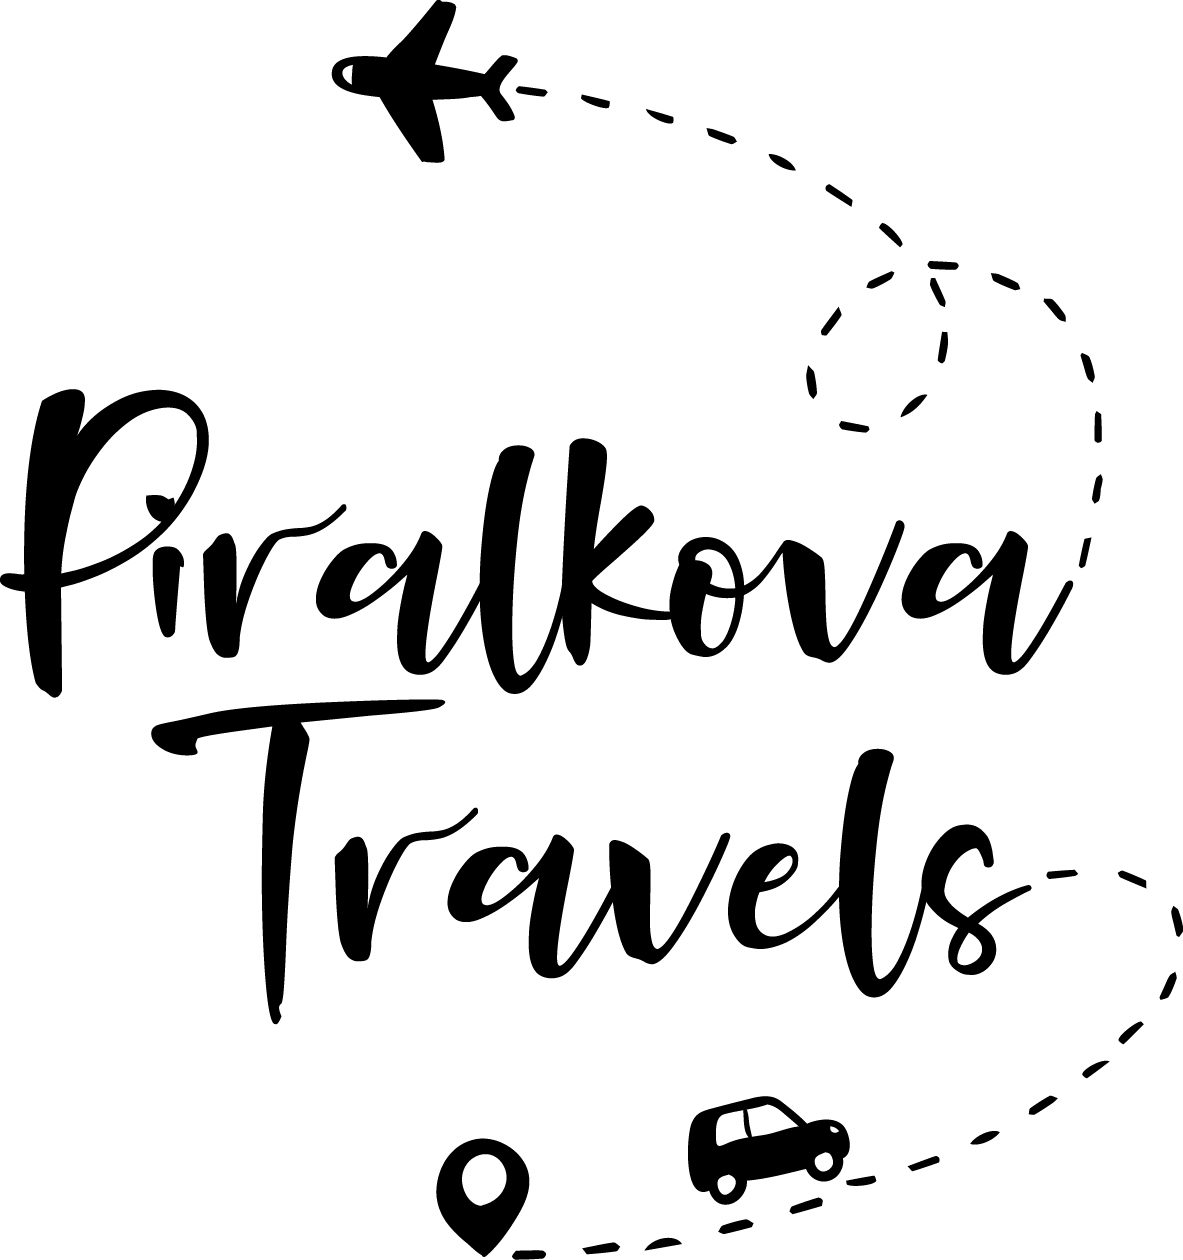 Piralkova Travels